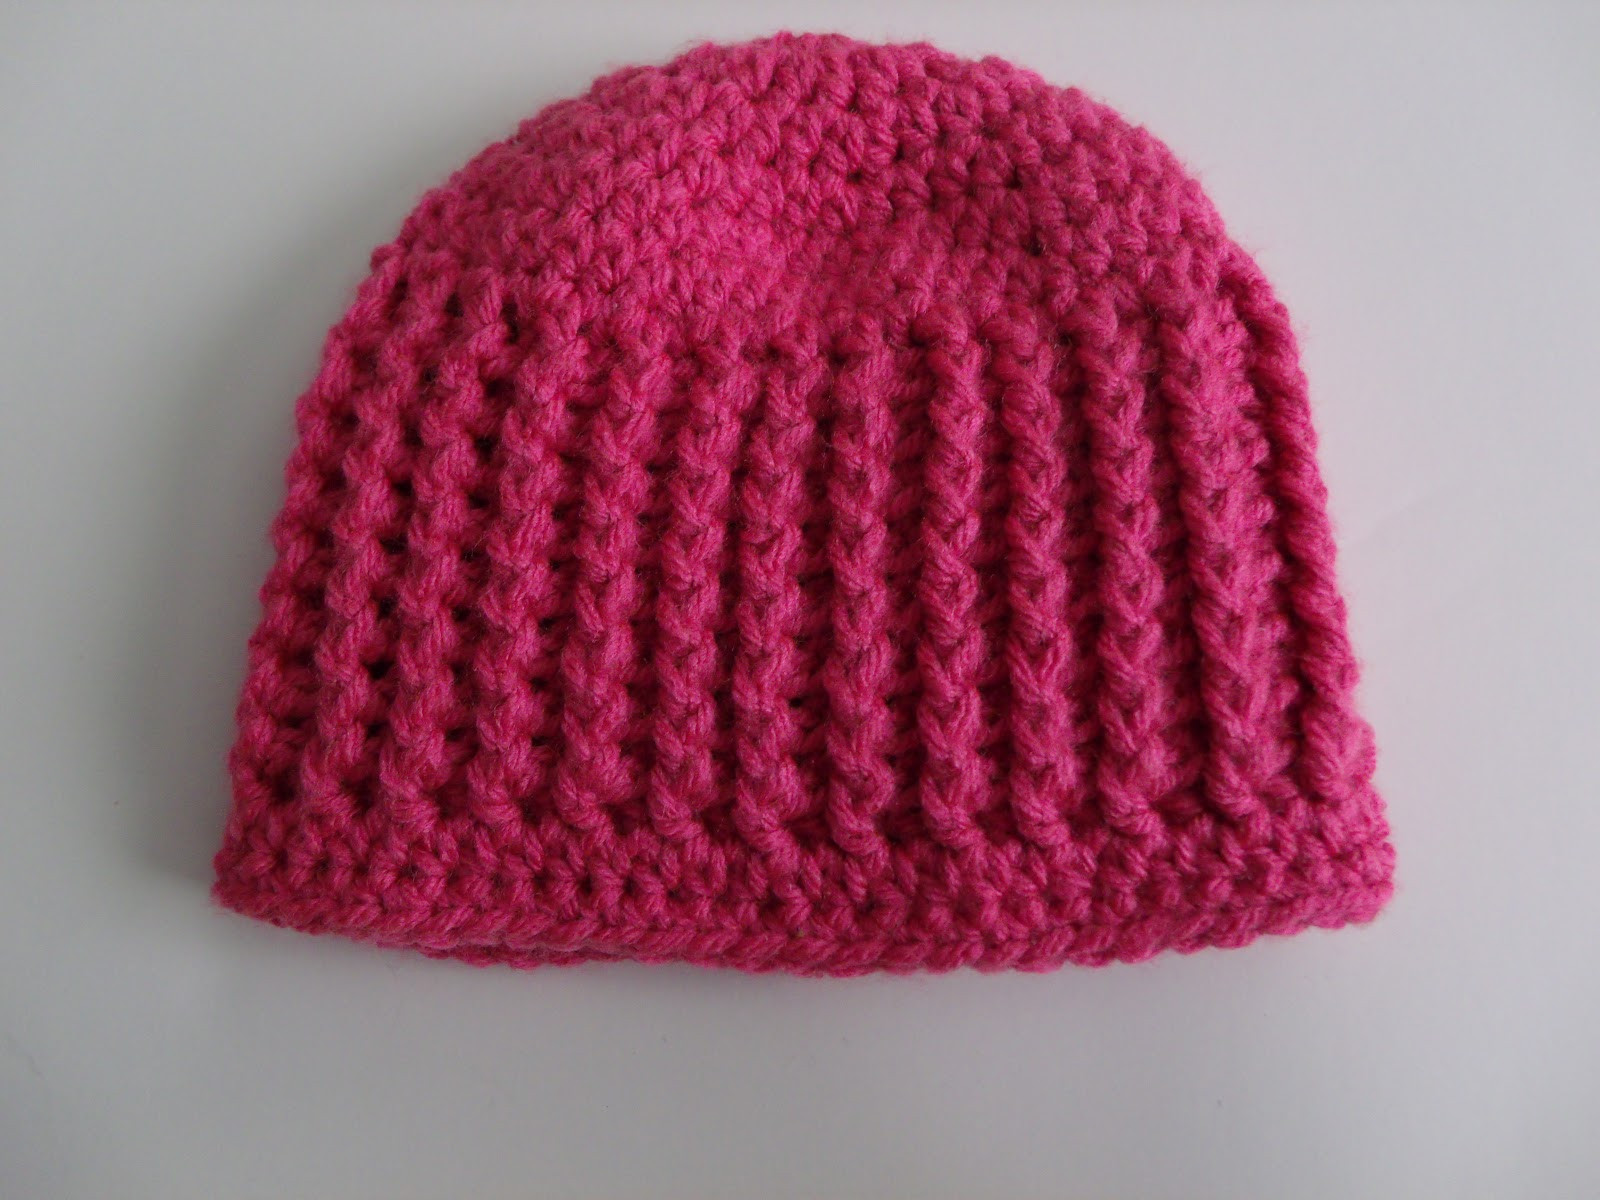 Free Crochet Baby Hat Patterns Inspirational Ribbed Beanie Of Adorable 48 Pics Free Crochet Baby Hat Patterns